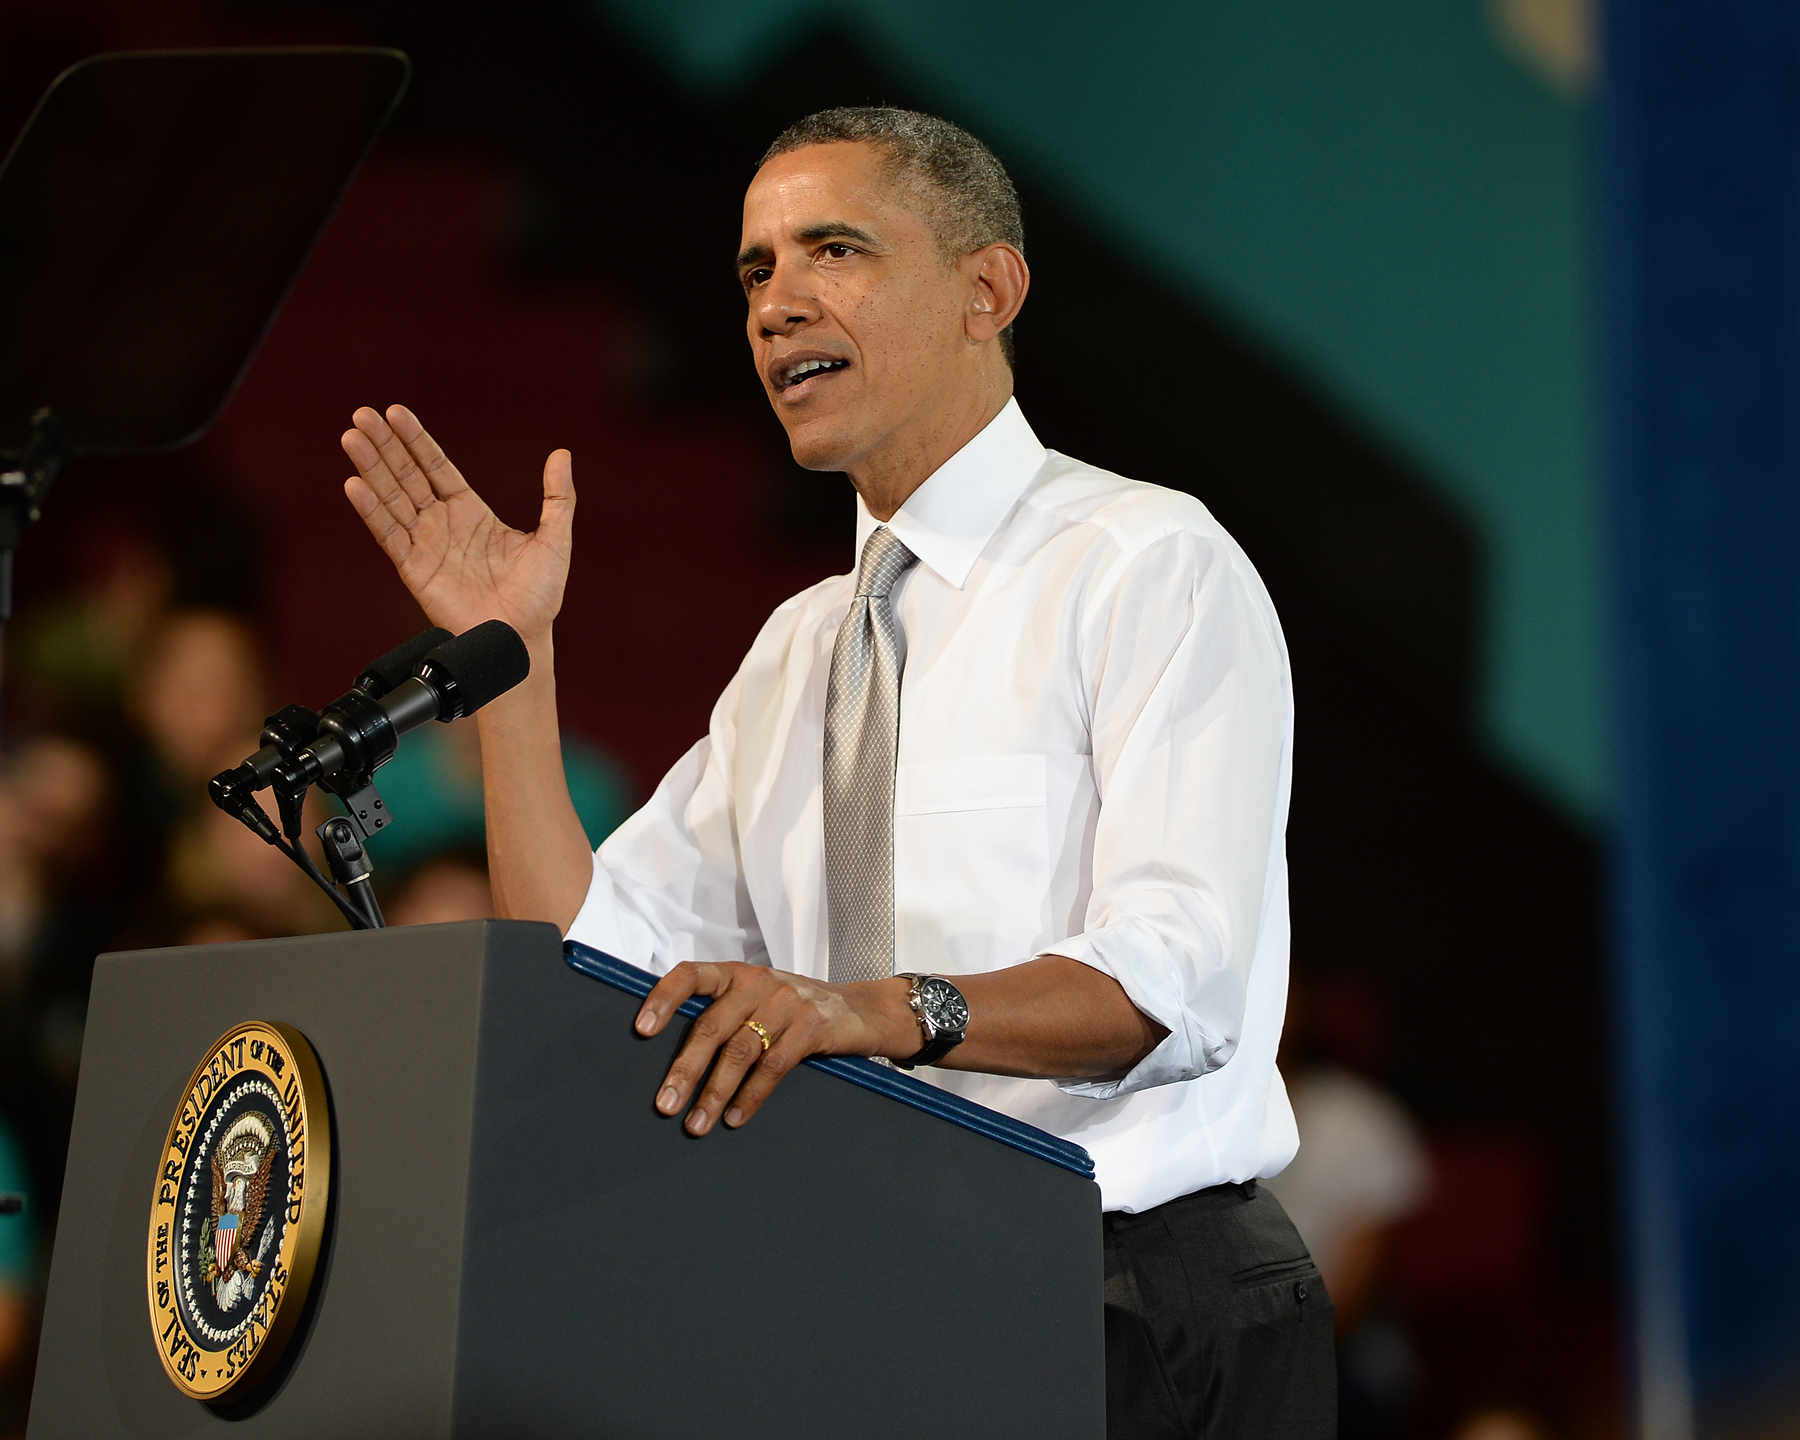 President Barack Obama delivers remarks on the quality of education at Coral Reef High School on March 7, 2014 in Miami, Fla.